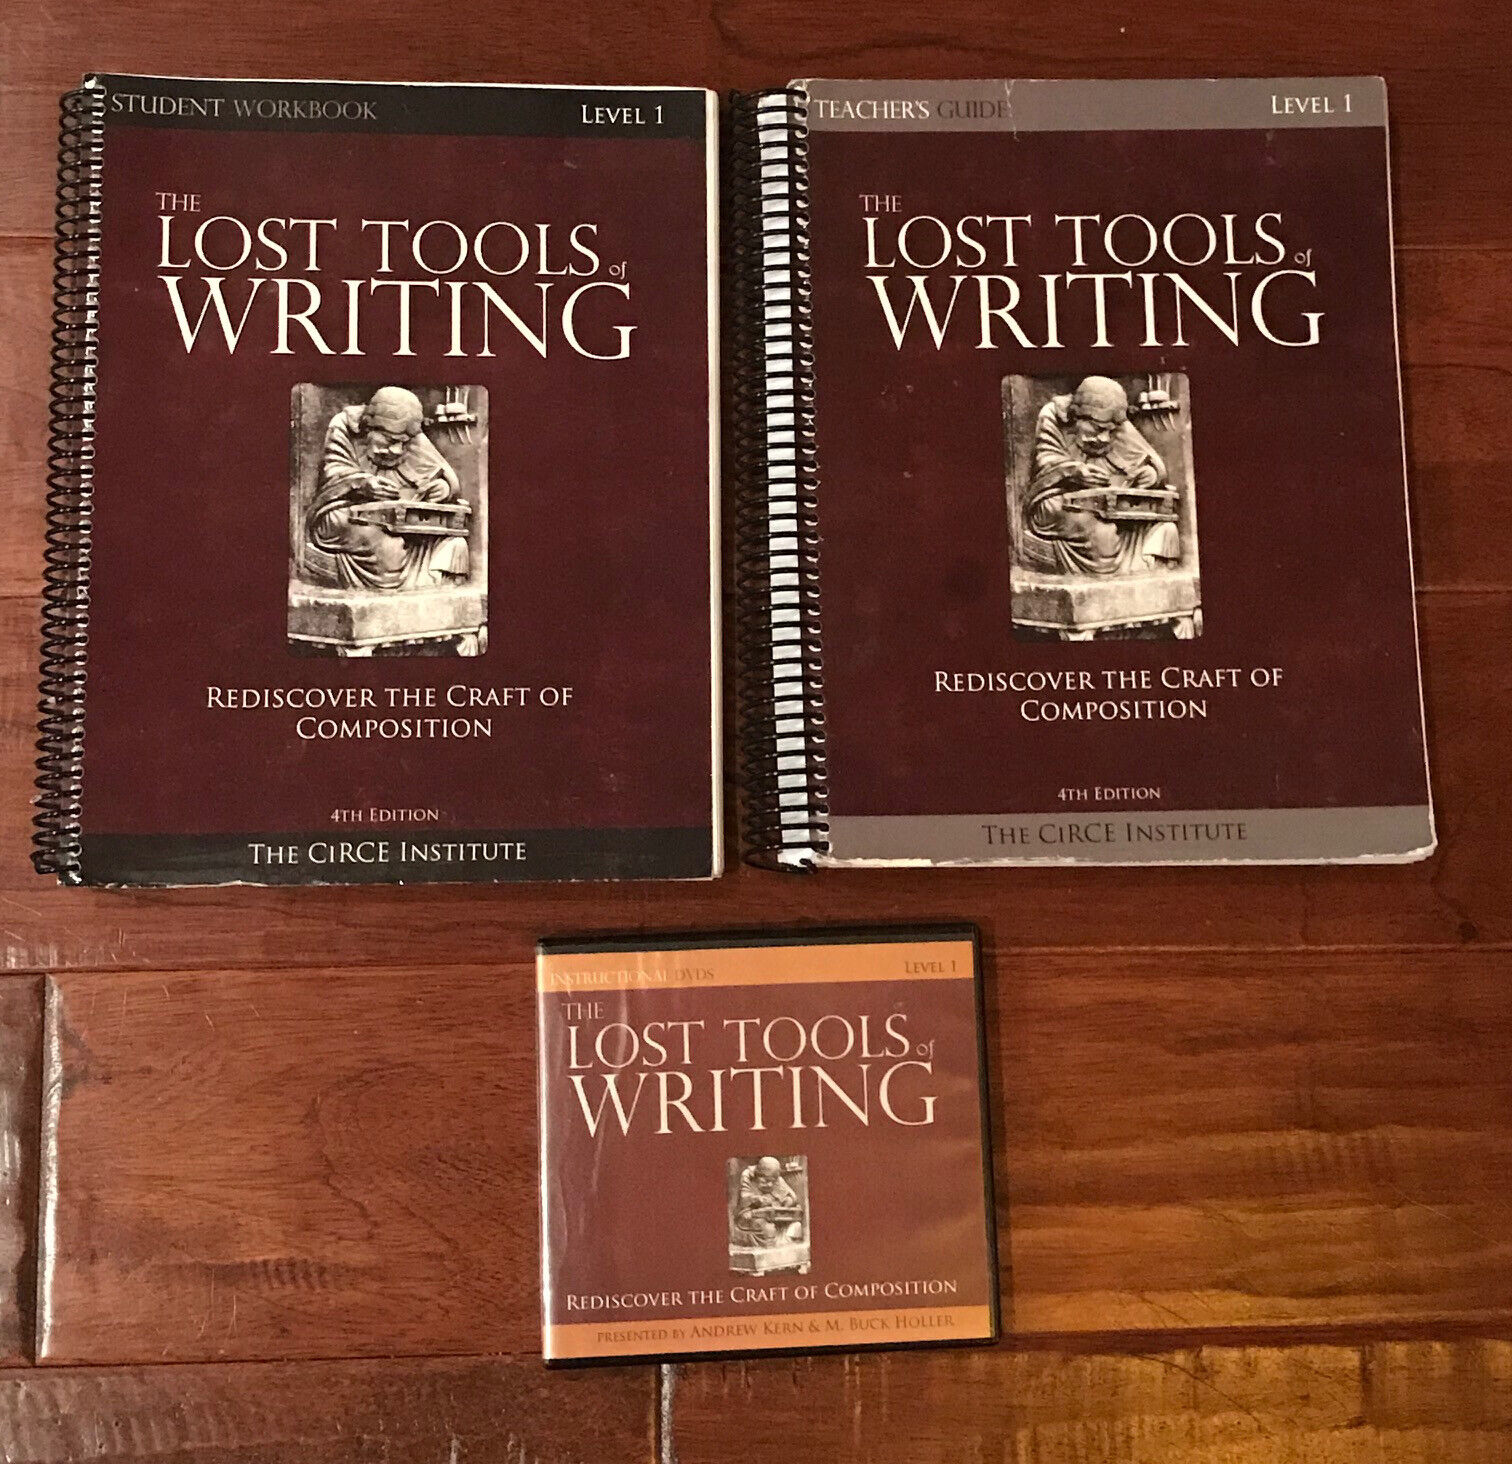 The Lost Tools Of Writing Level One - Student s Workbook, Teacher s Guide DVDs - $59.95